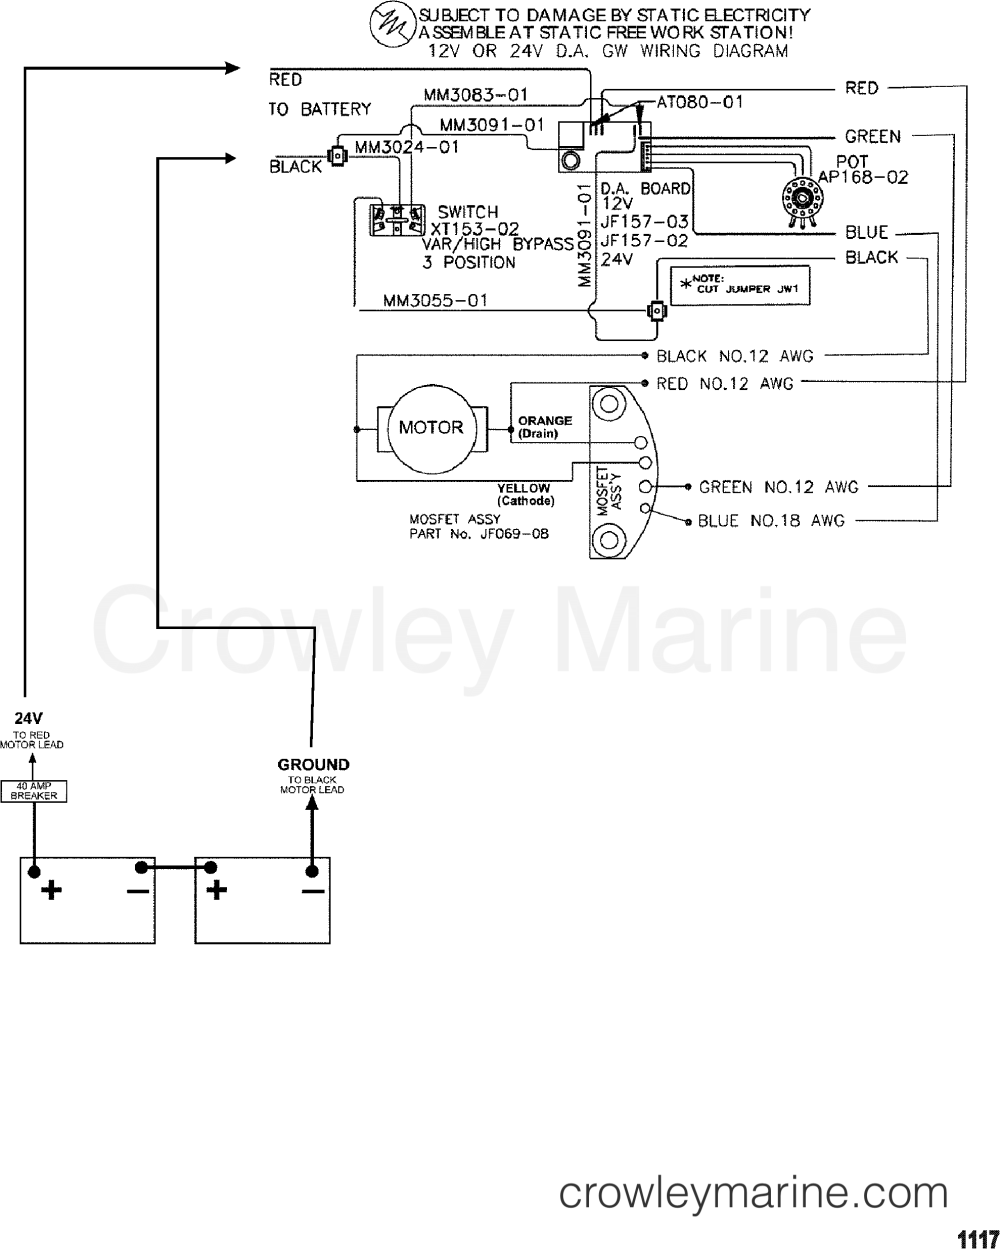 medium resolution of motorguide wiring diagram 12v wiring diagram article motorguide wiring diagrams